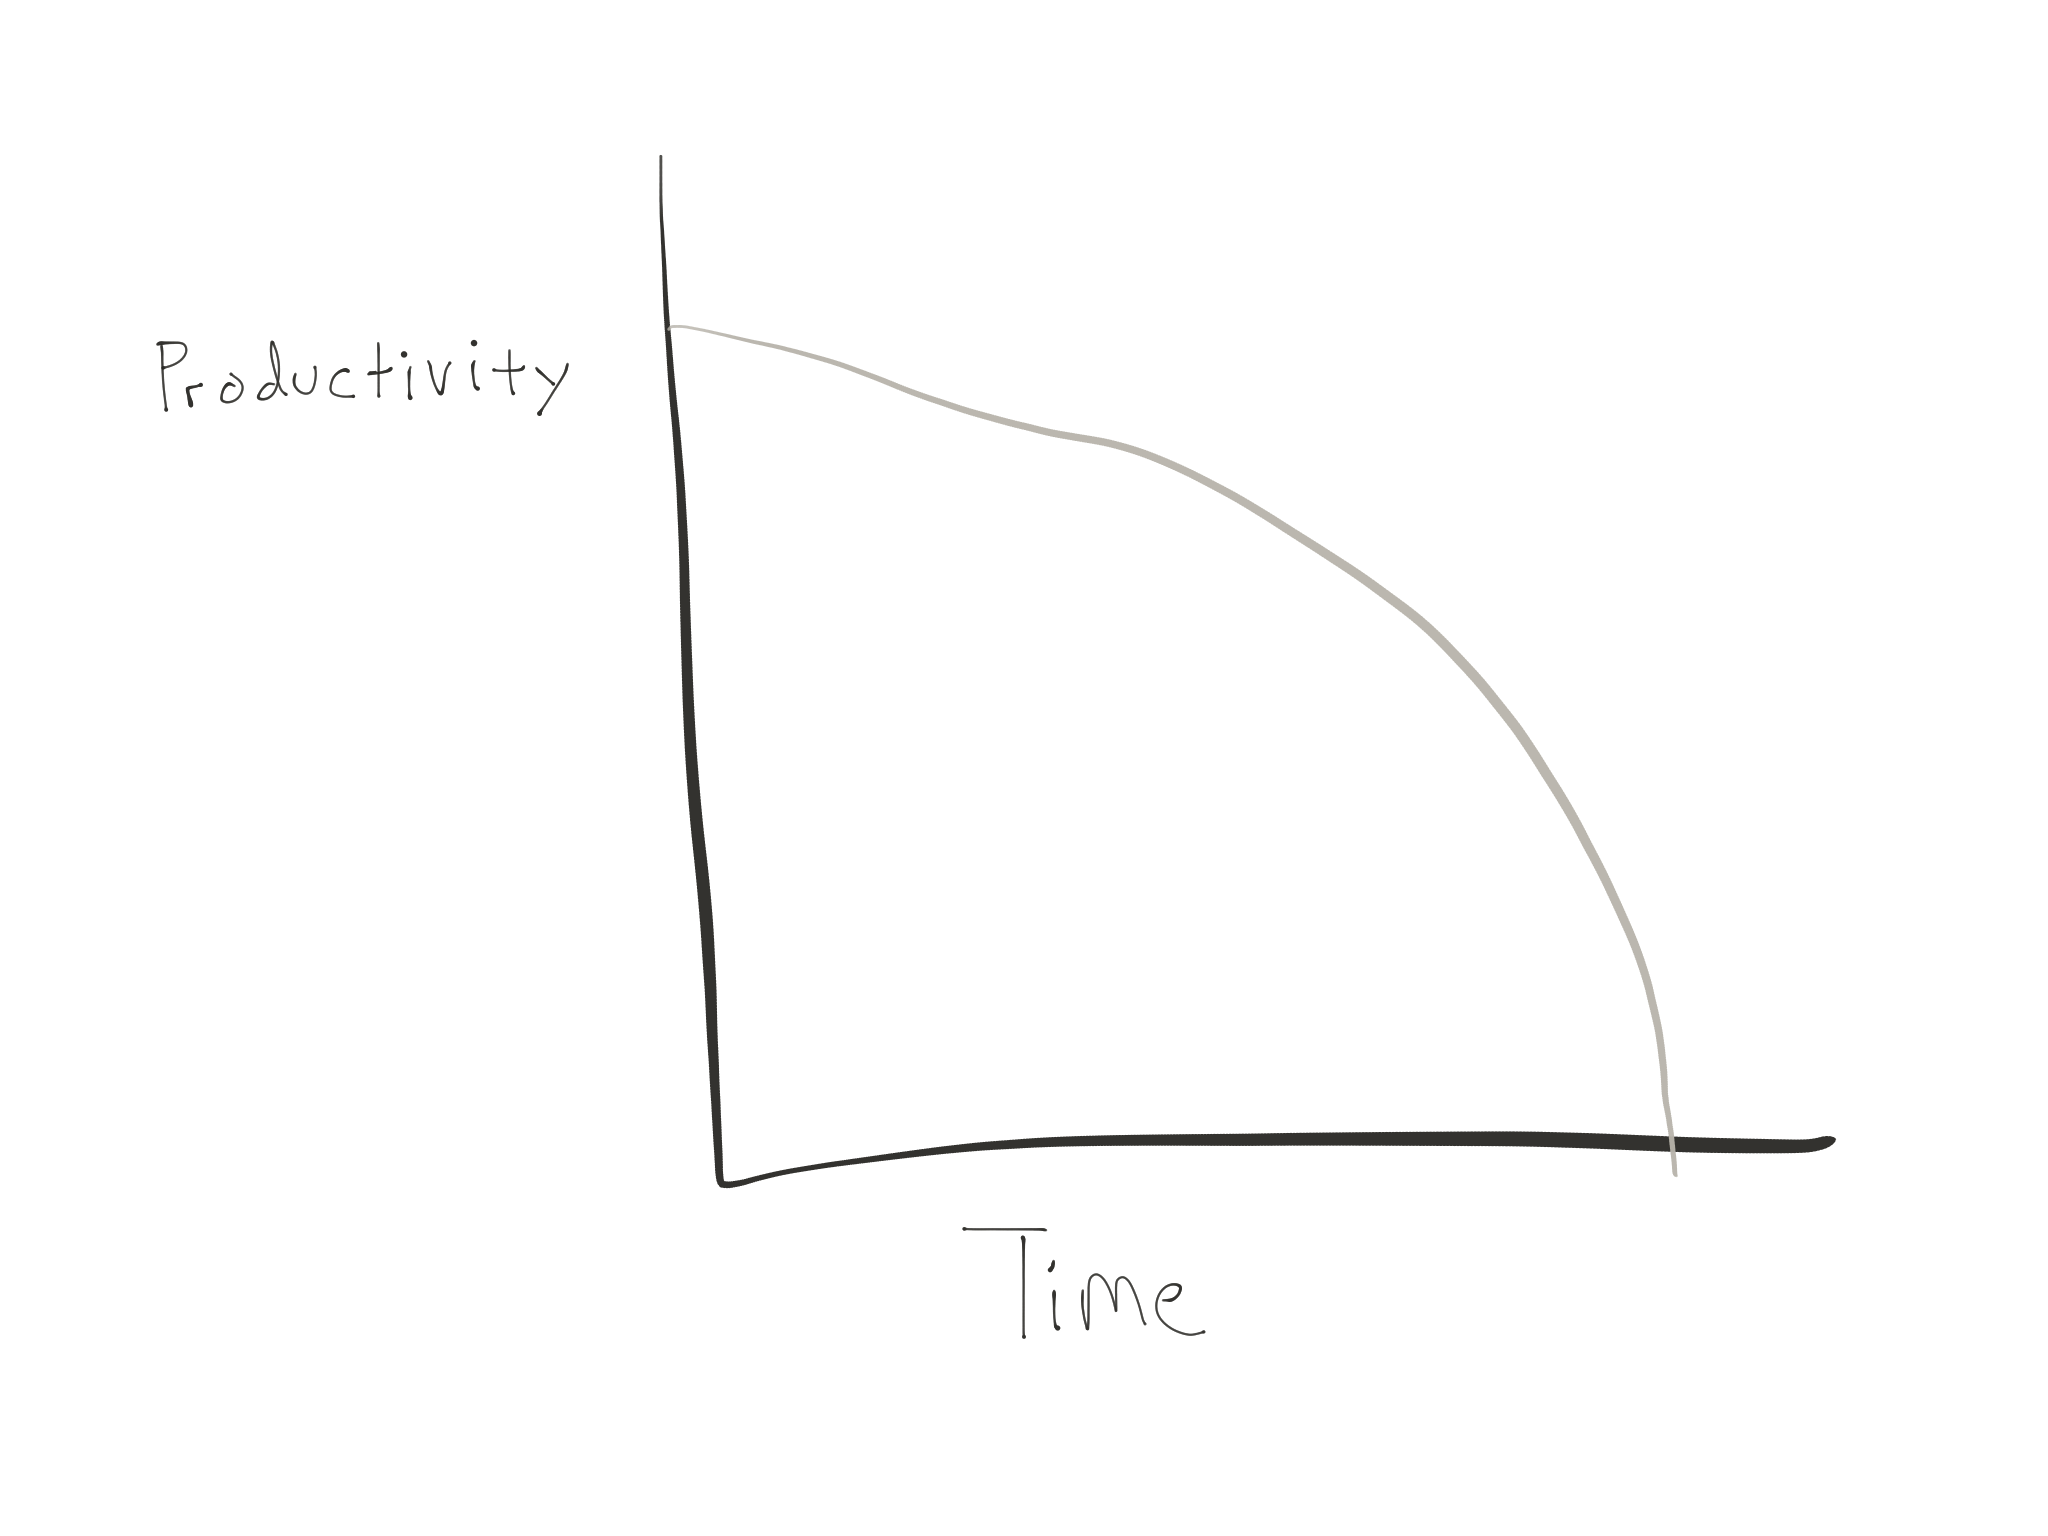 graph of the decreasing productivity over time of technical debt